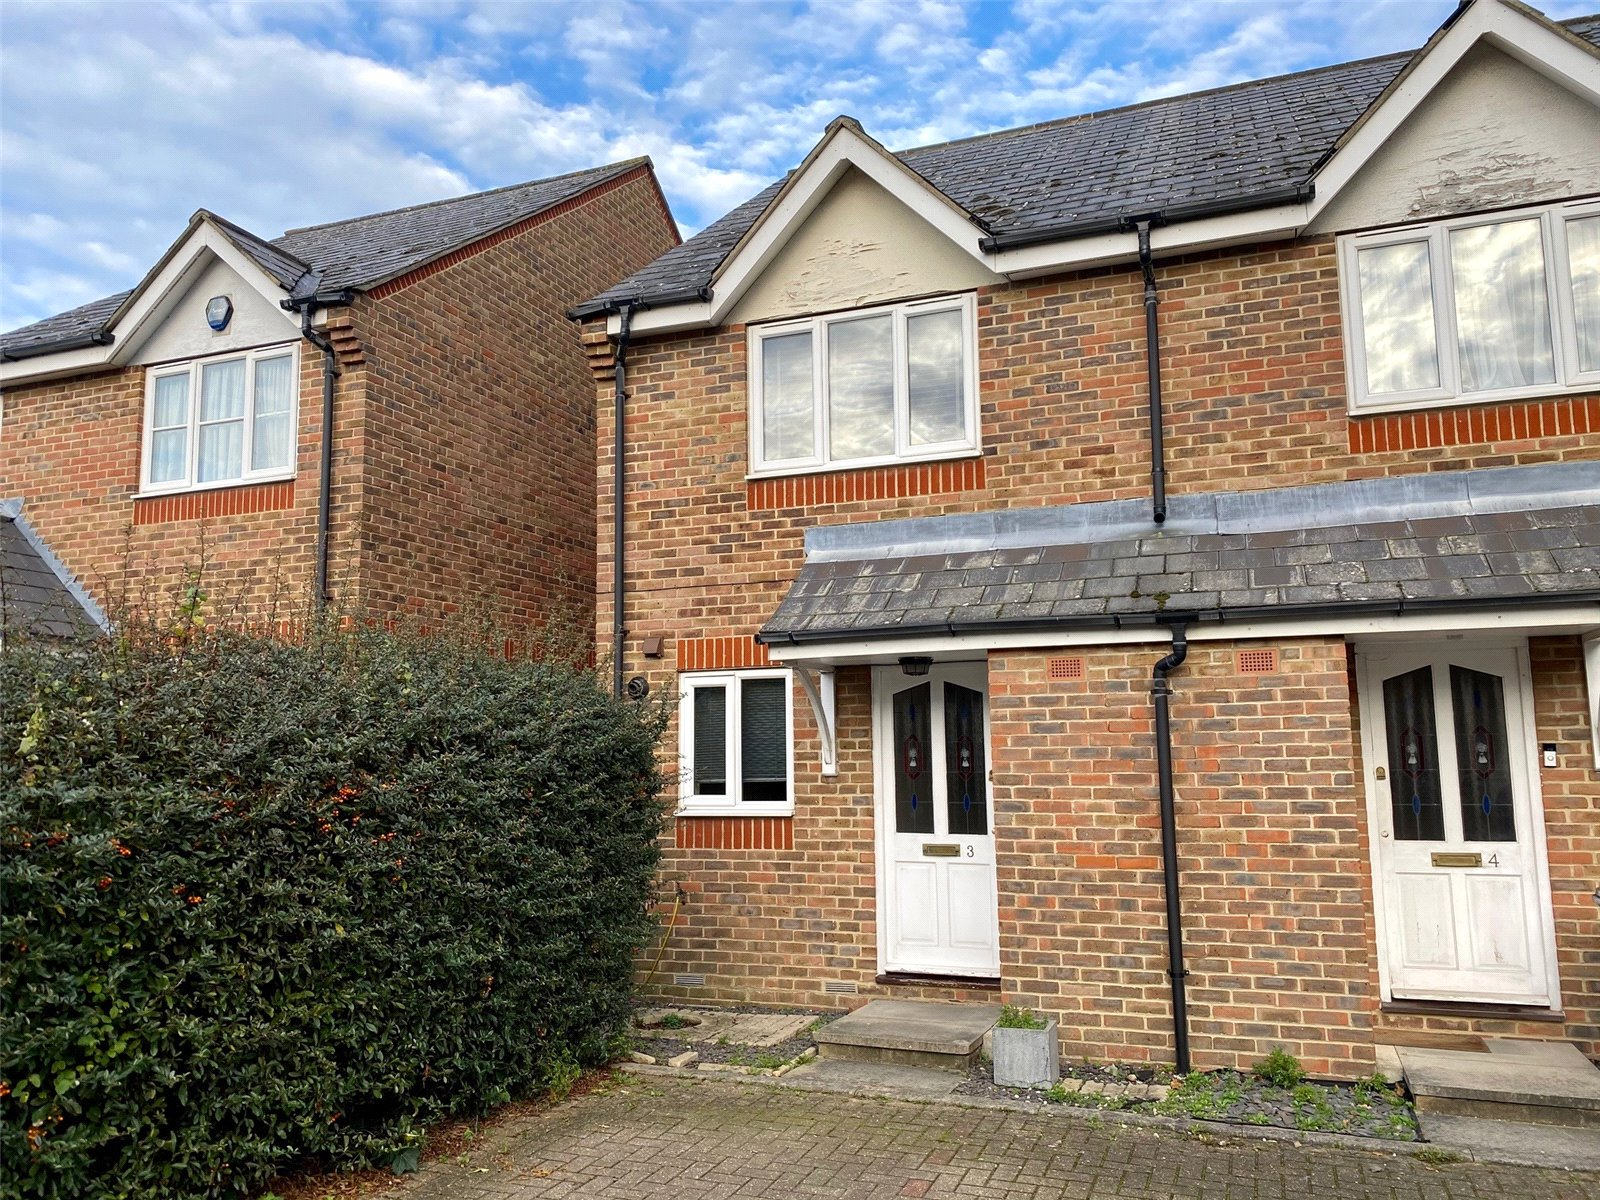 2 bed house to rent in New Southgate, N11 3PY  - Property Image 1